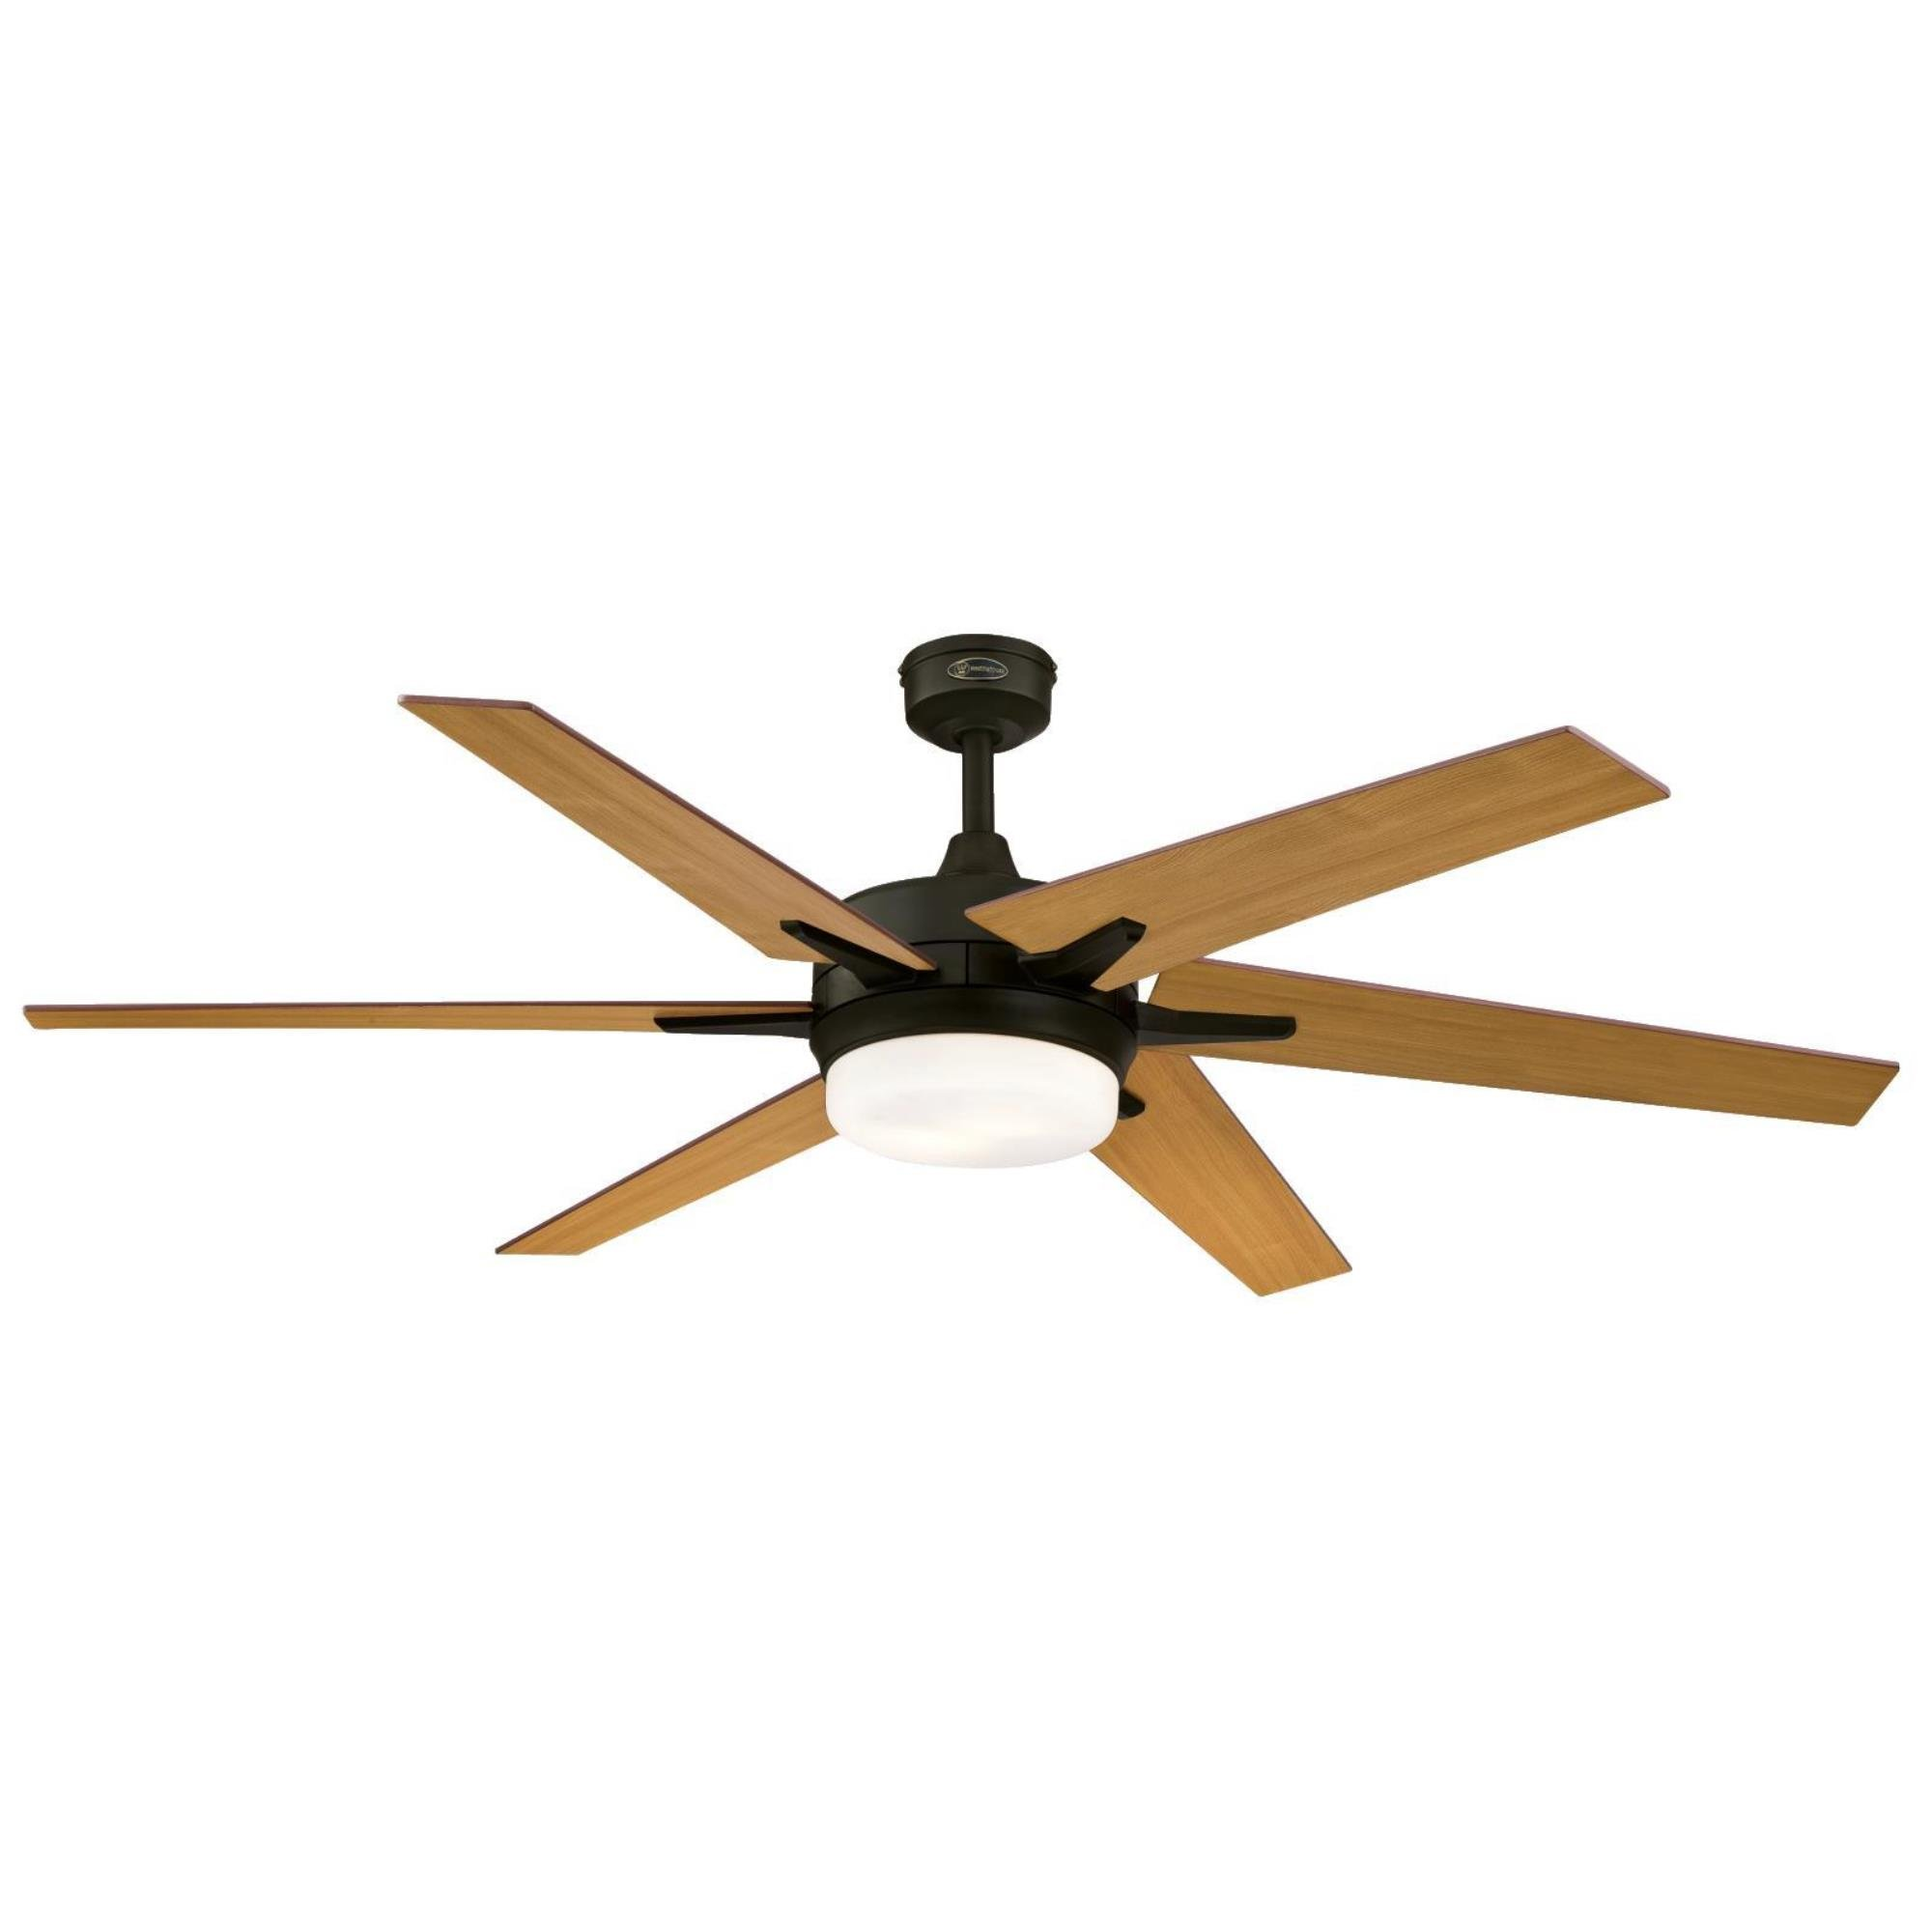 Westinghouse Lighting Remote Control Included 7207800 Cayuga 60-inch Oil Rubbed Bronze Indoor Ceiling Fan, Dimmable LED Light Kit with Opal Frosted Glass, by Westinghouse Lighting (Image #4)